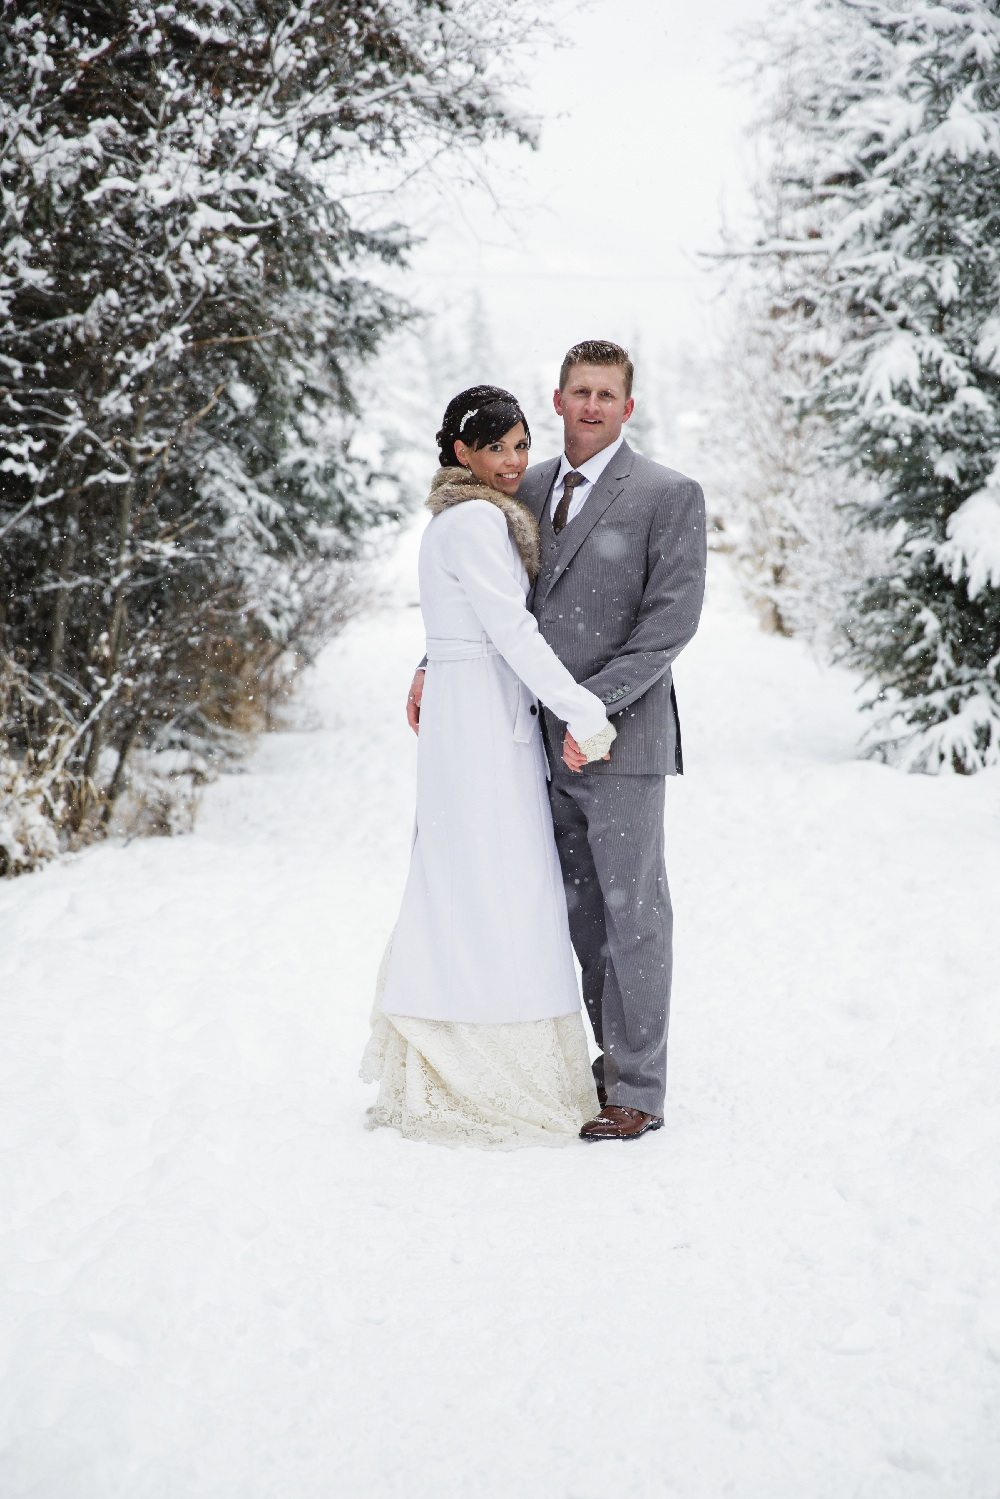 A rustic winter wedding in canmore alberta weddingbells arusticwinterweddingcal14 junglespirit Image collections